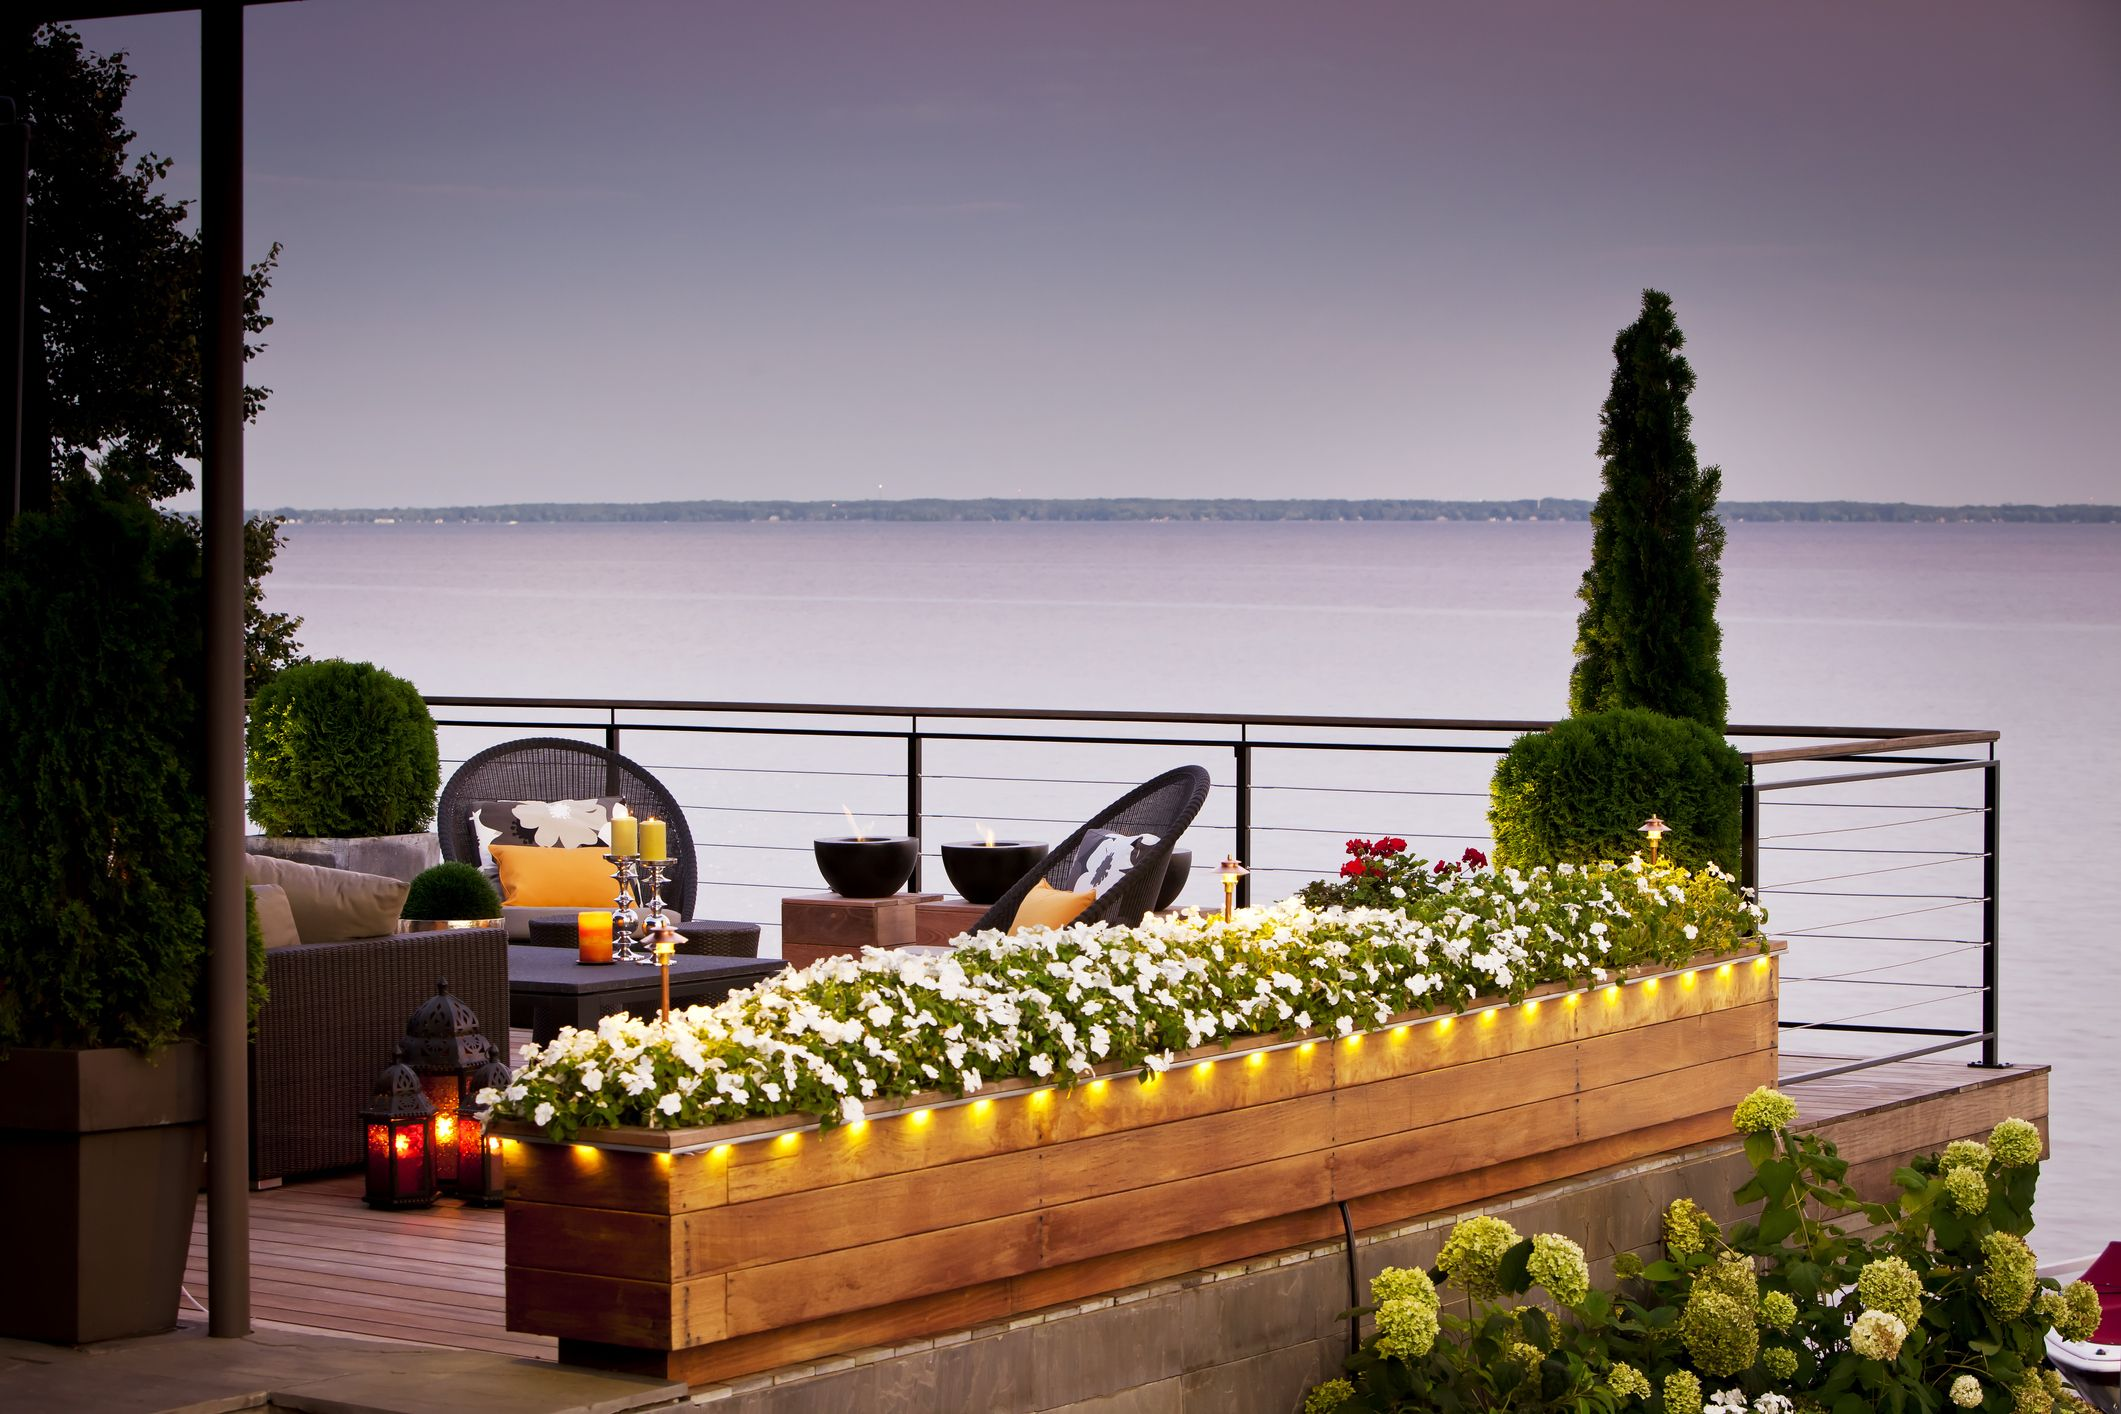 High Quality Patio Over Looking The Lake At Sunset.